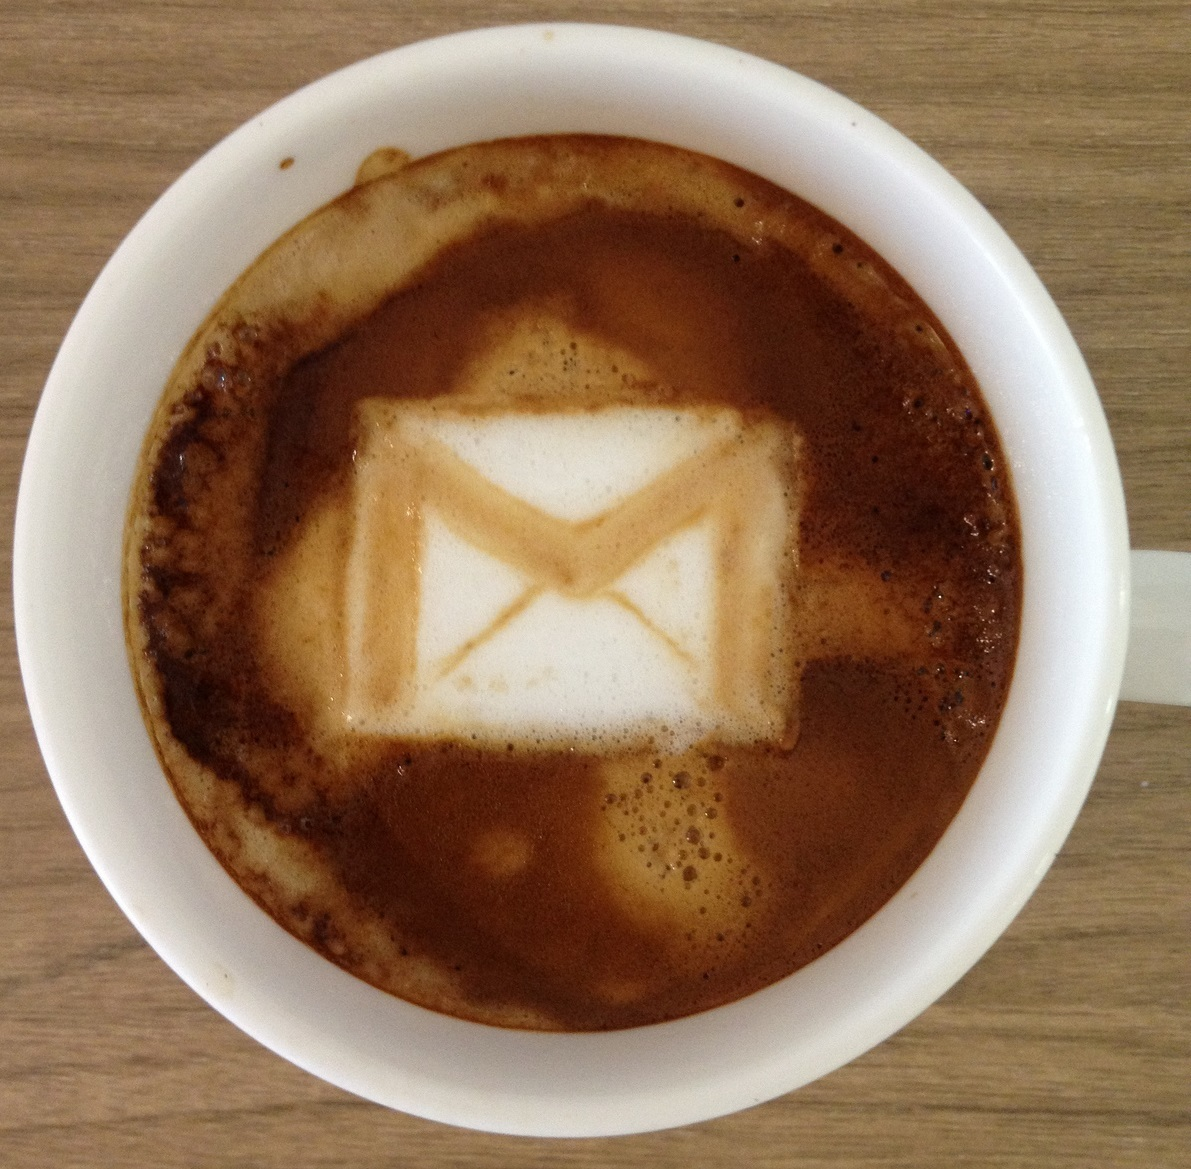 Lattemail